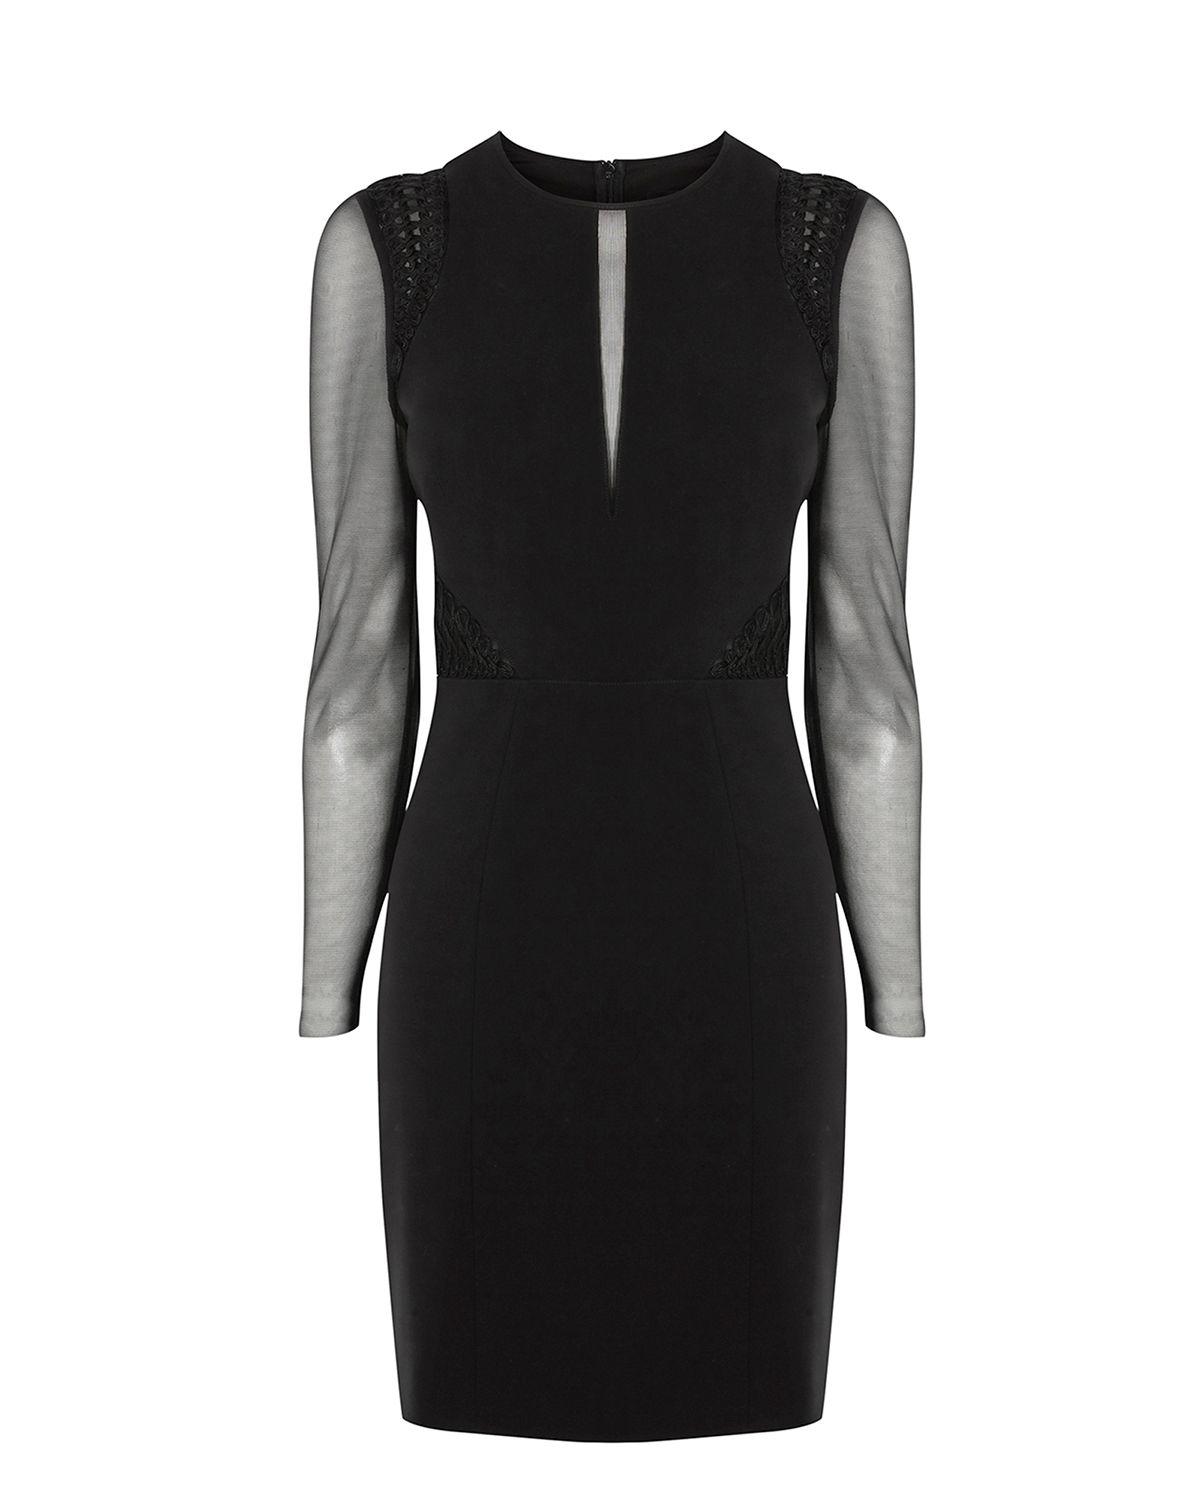 Karen Millen Mesh Long Sleeve Pencil Dress, Black